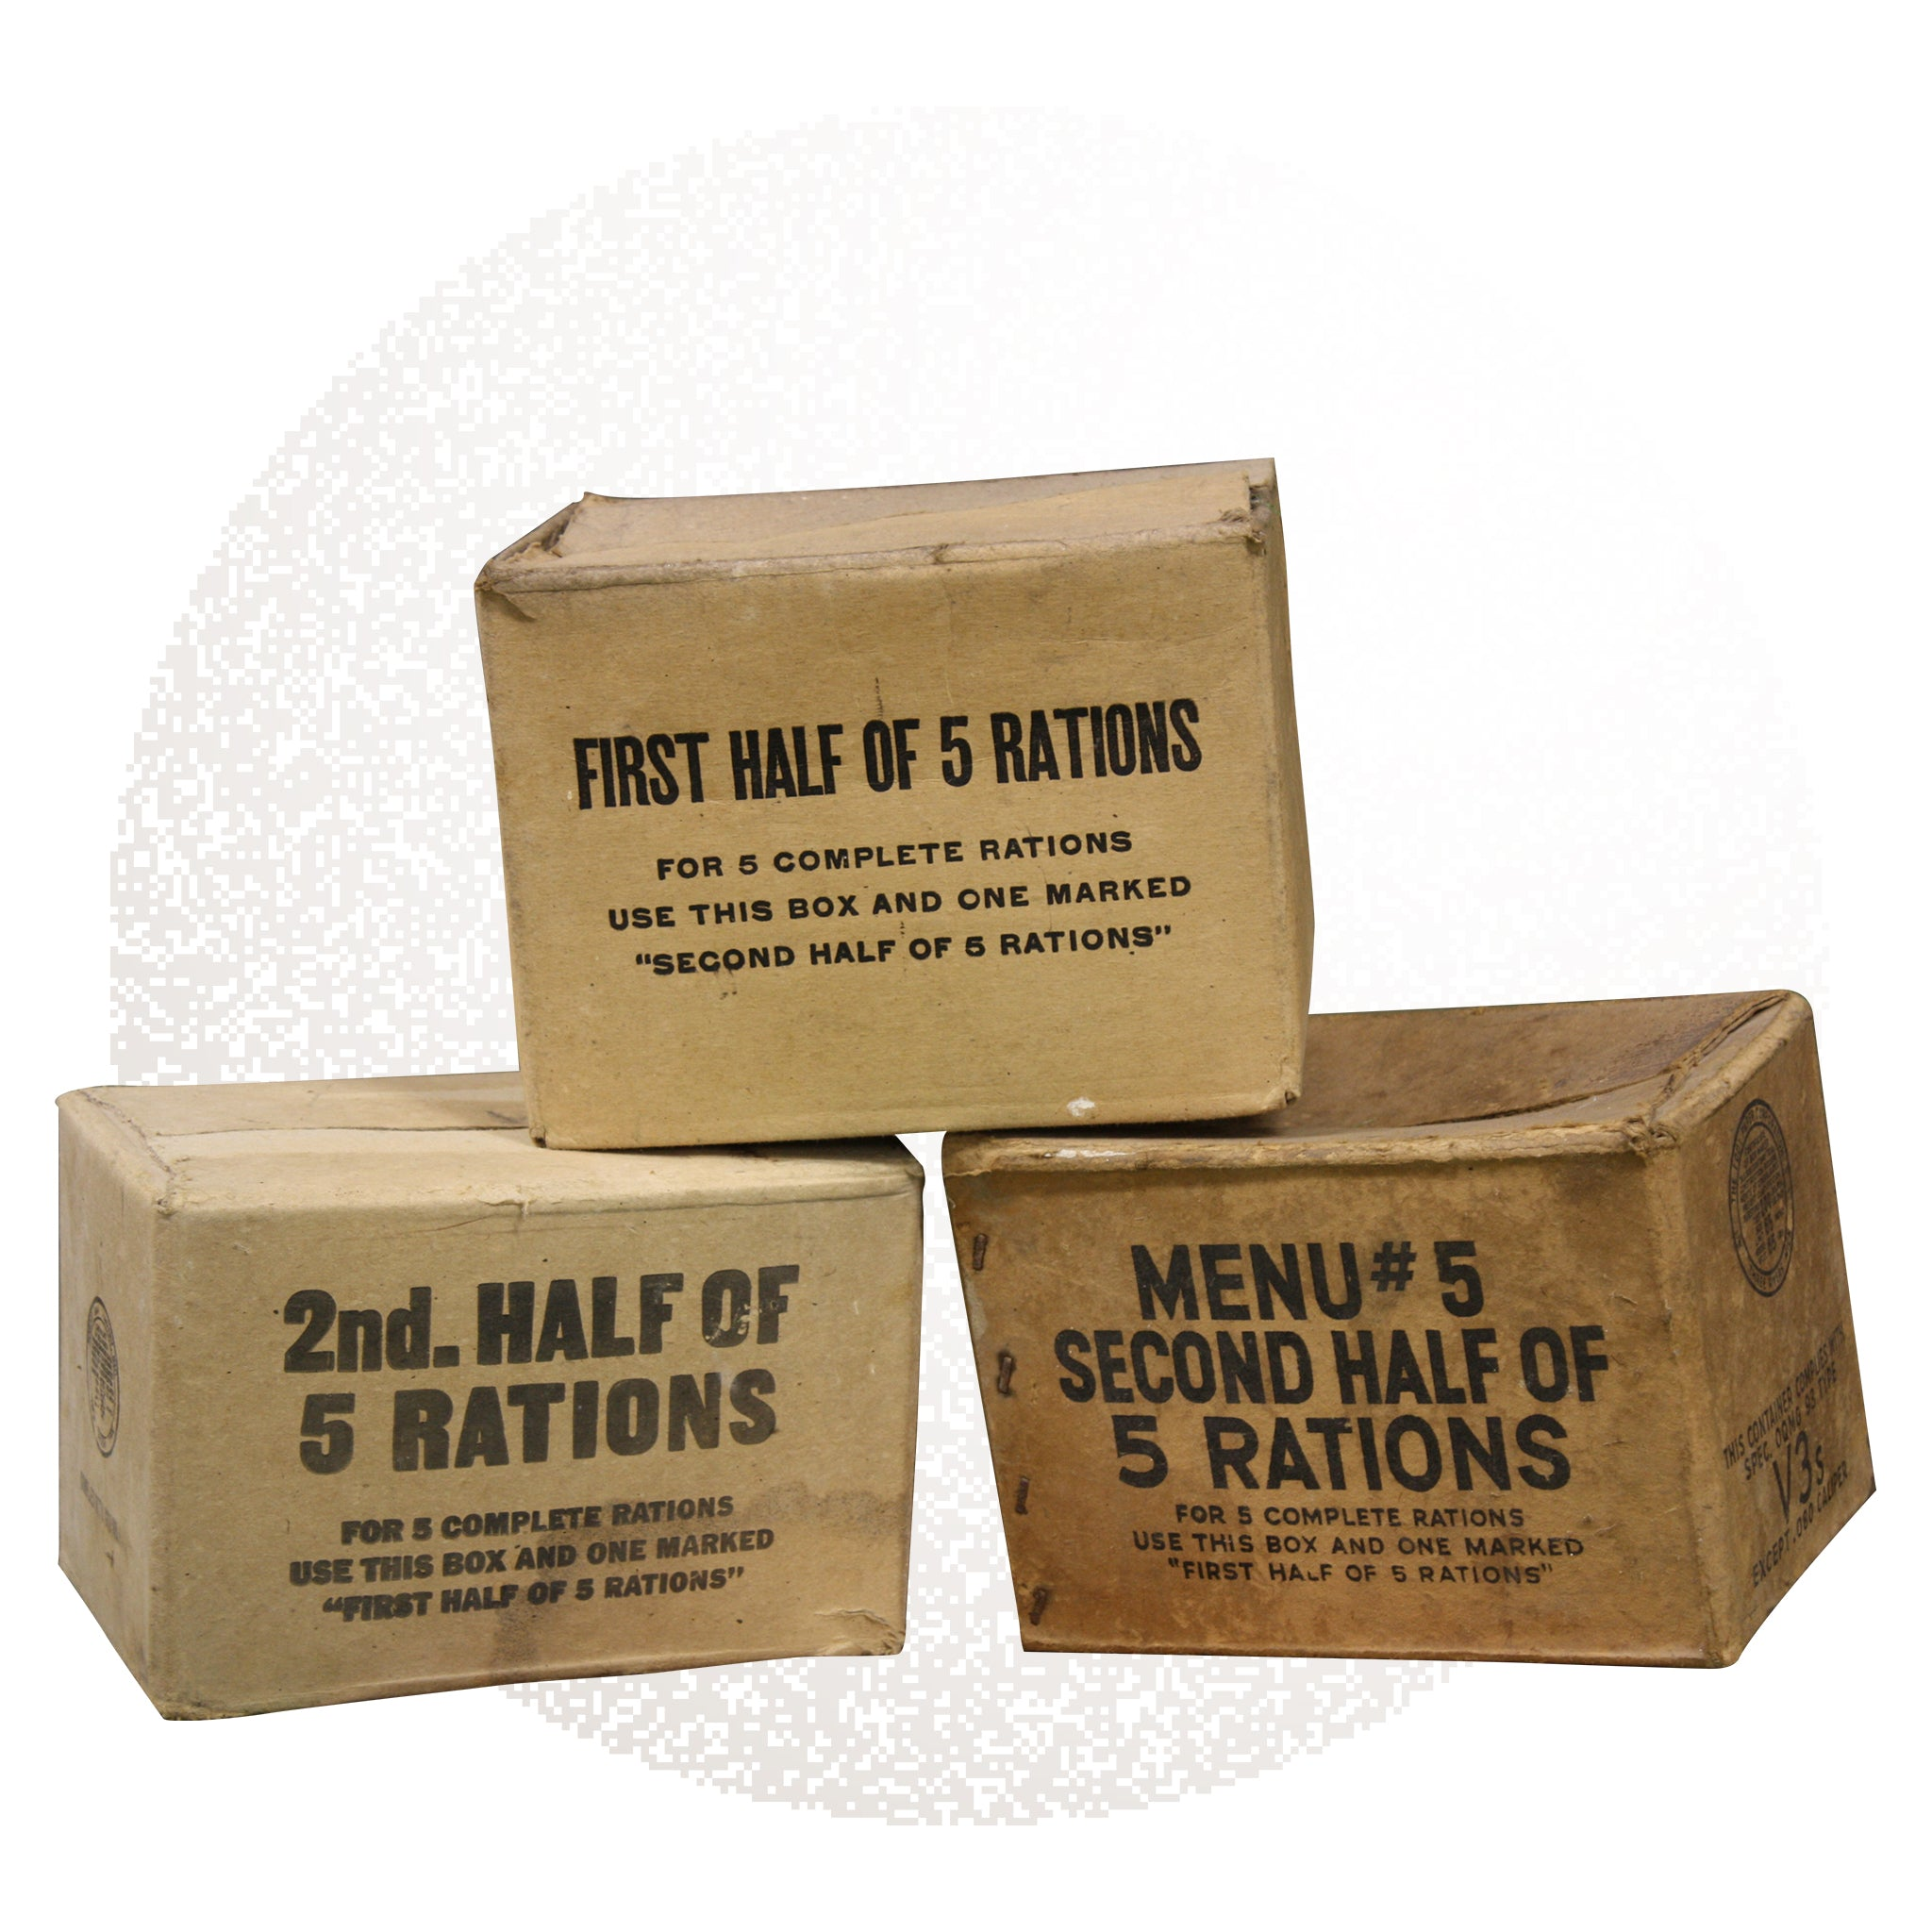 Solider Ration boxes